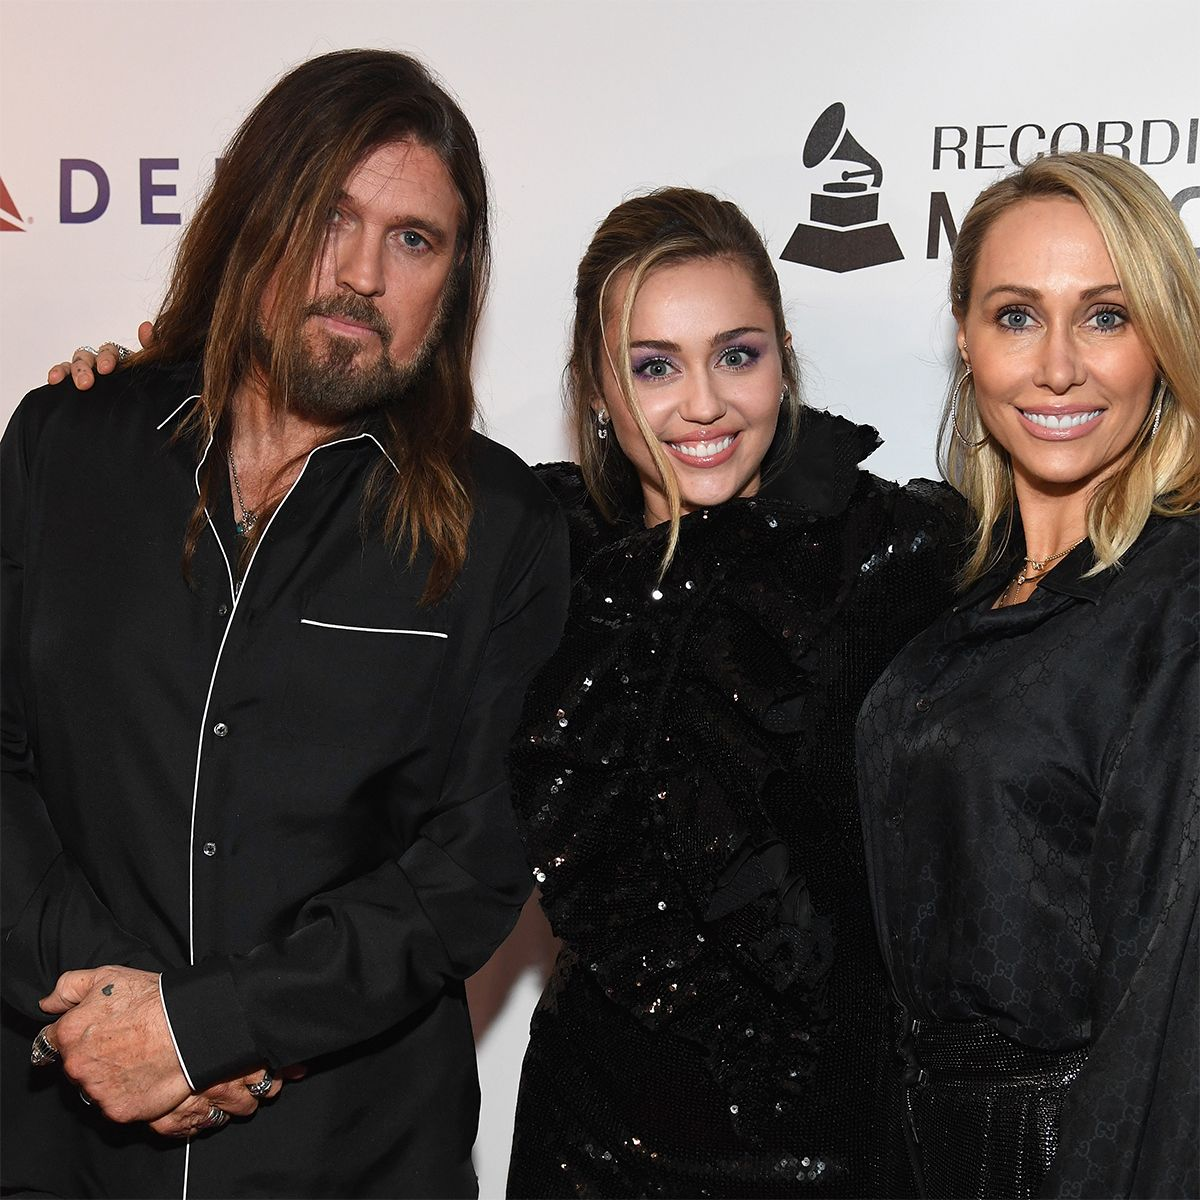 Miley Cyrus Has a Star-Studded Family Tree, Including Some Very Famous Siblings